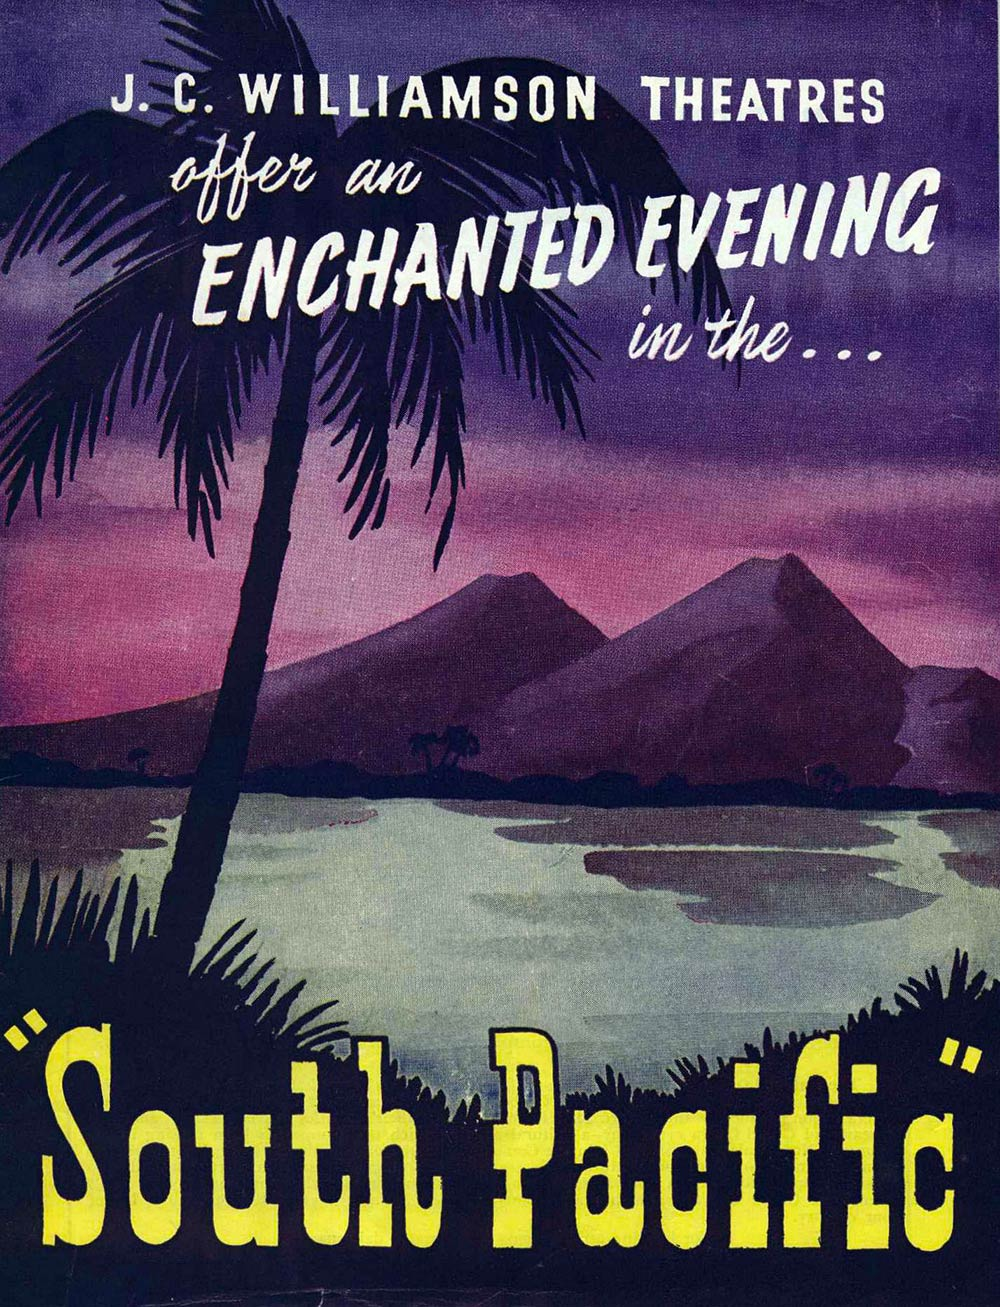 <em>South Pacific</em>. Book and lyrics by Oscar Hammerstein II; music by Richard Rodgers. (J.C. Williamson Theatres Ltd.). His Majesty's Theatre, Dunedin, [1953?]